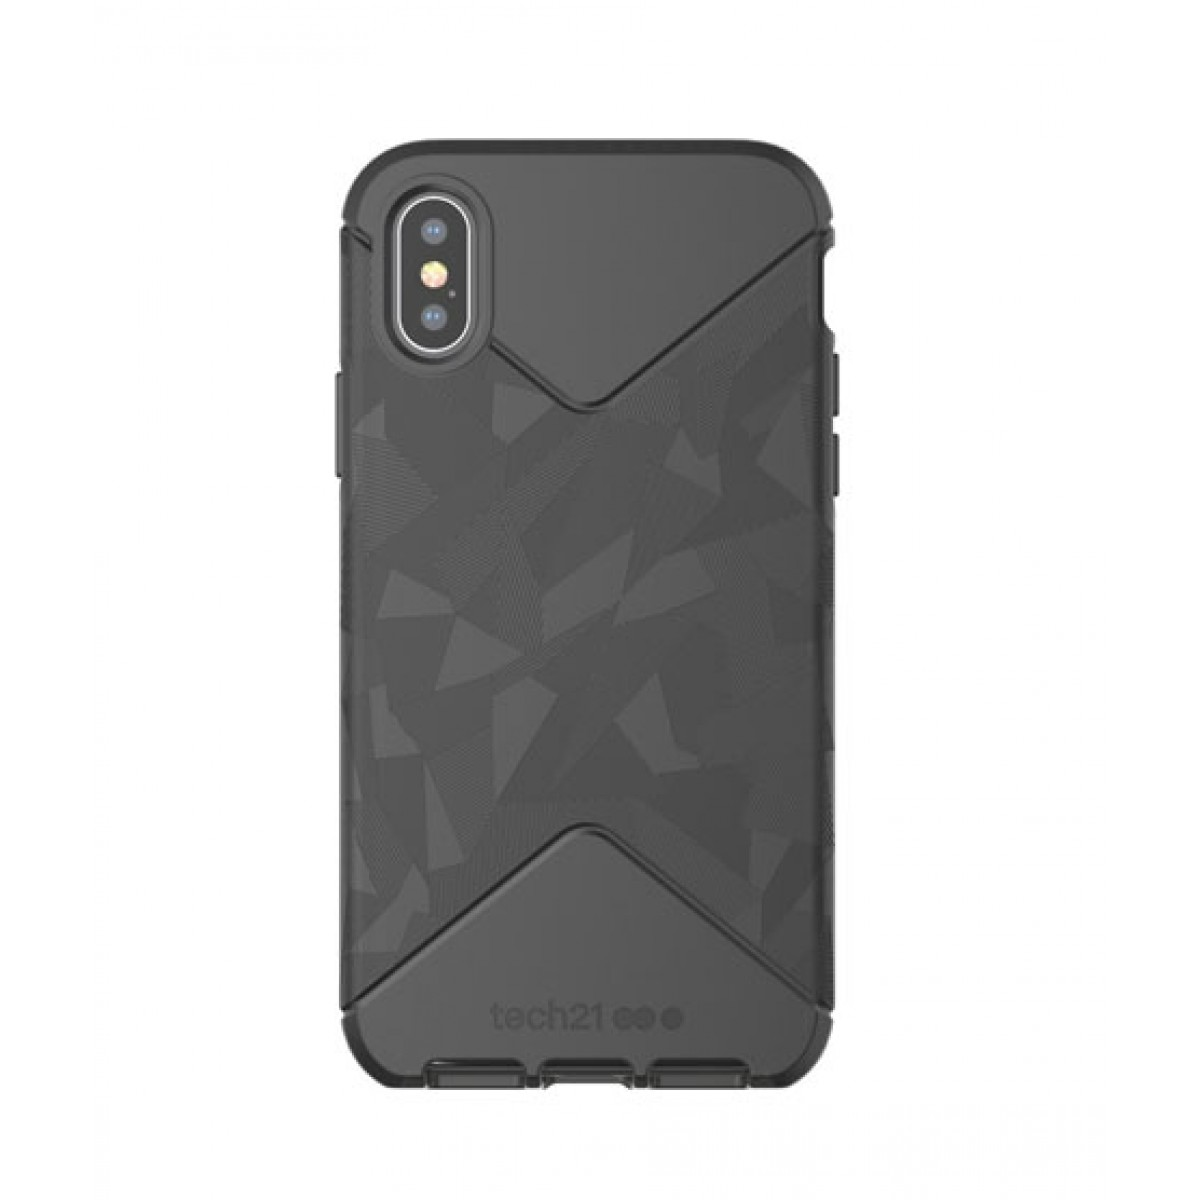 save off 51704 2061f Tech21 Evo Tactical Black Case For iPhone X/XS